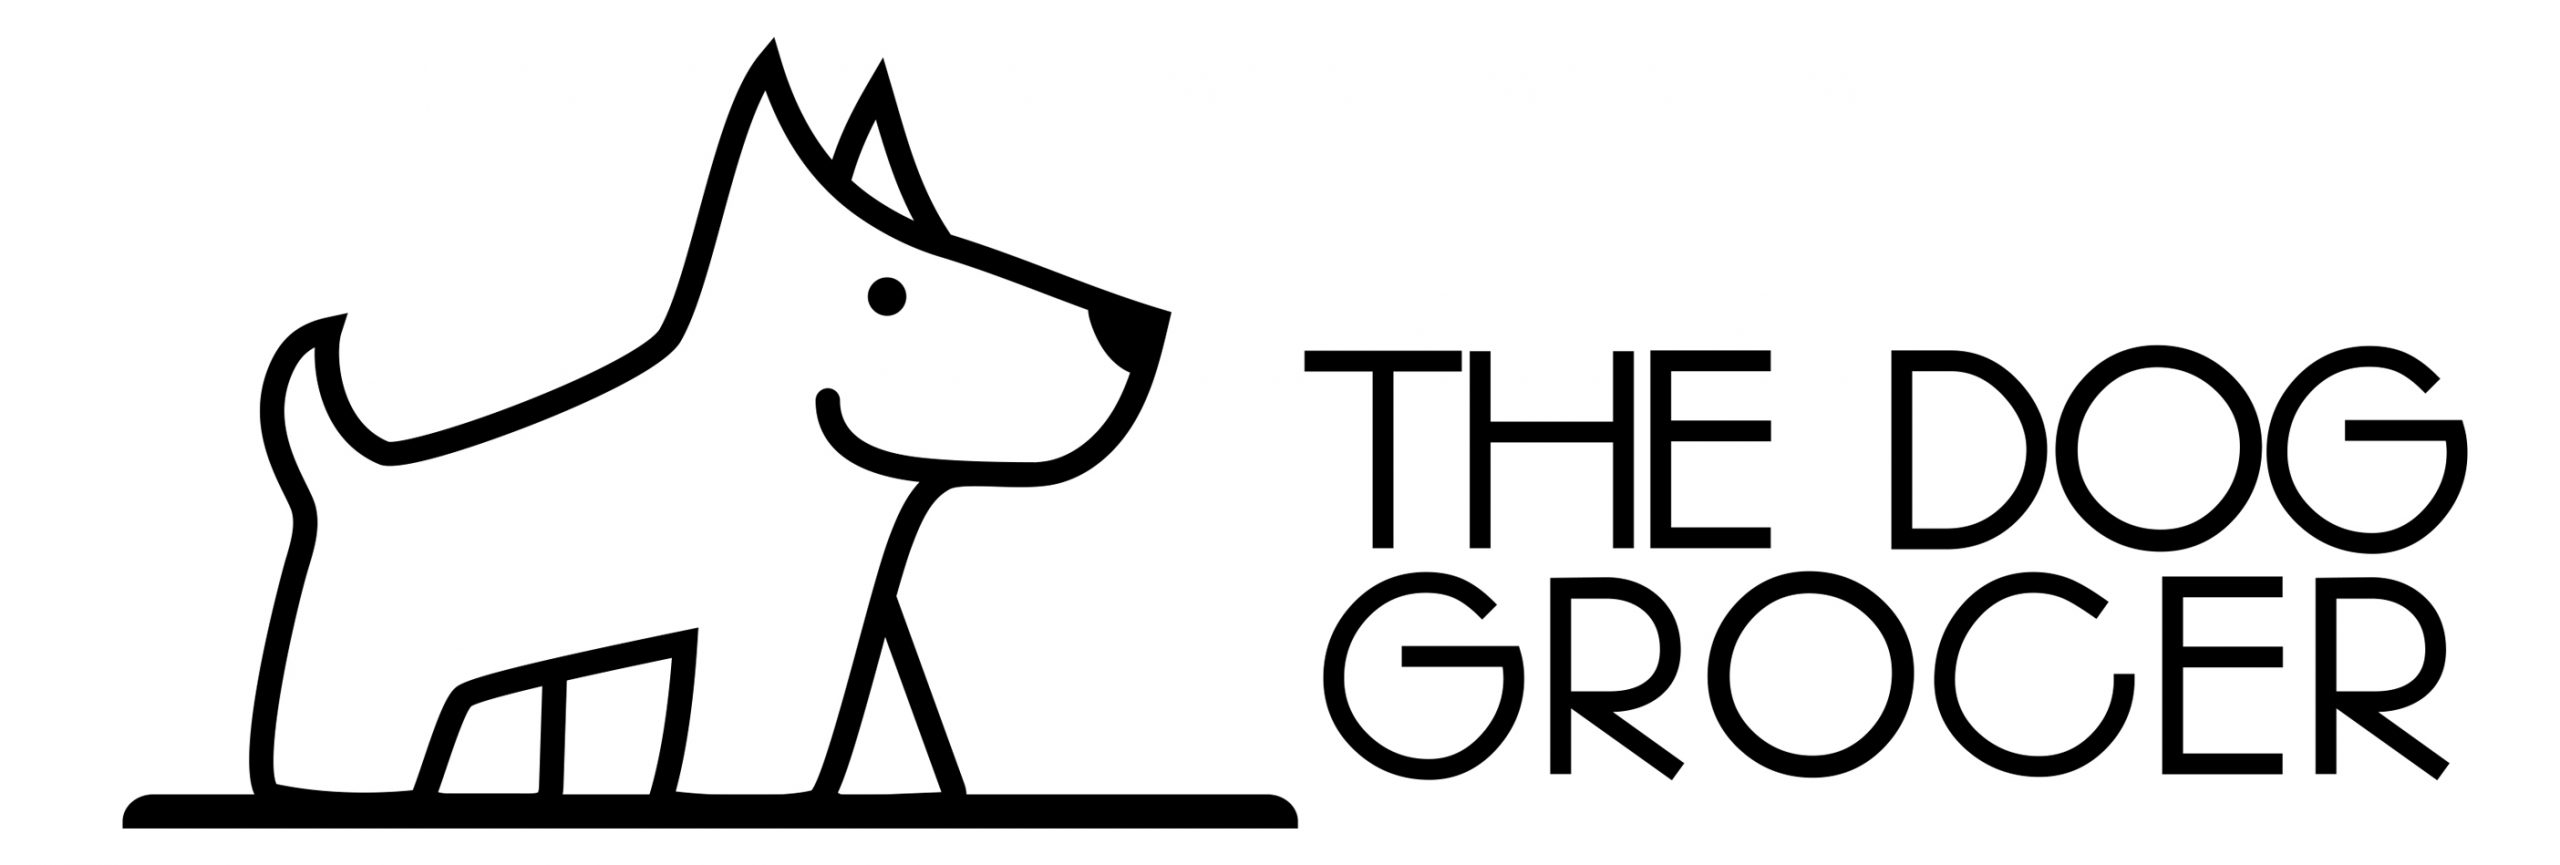 The Dog Grocer